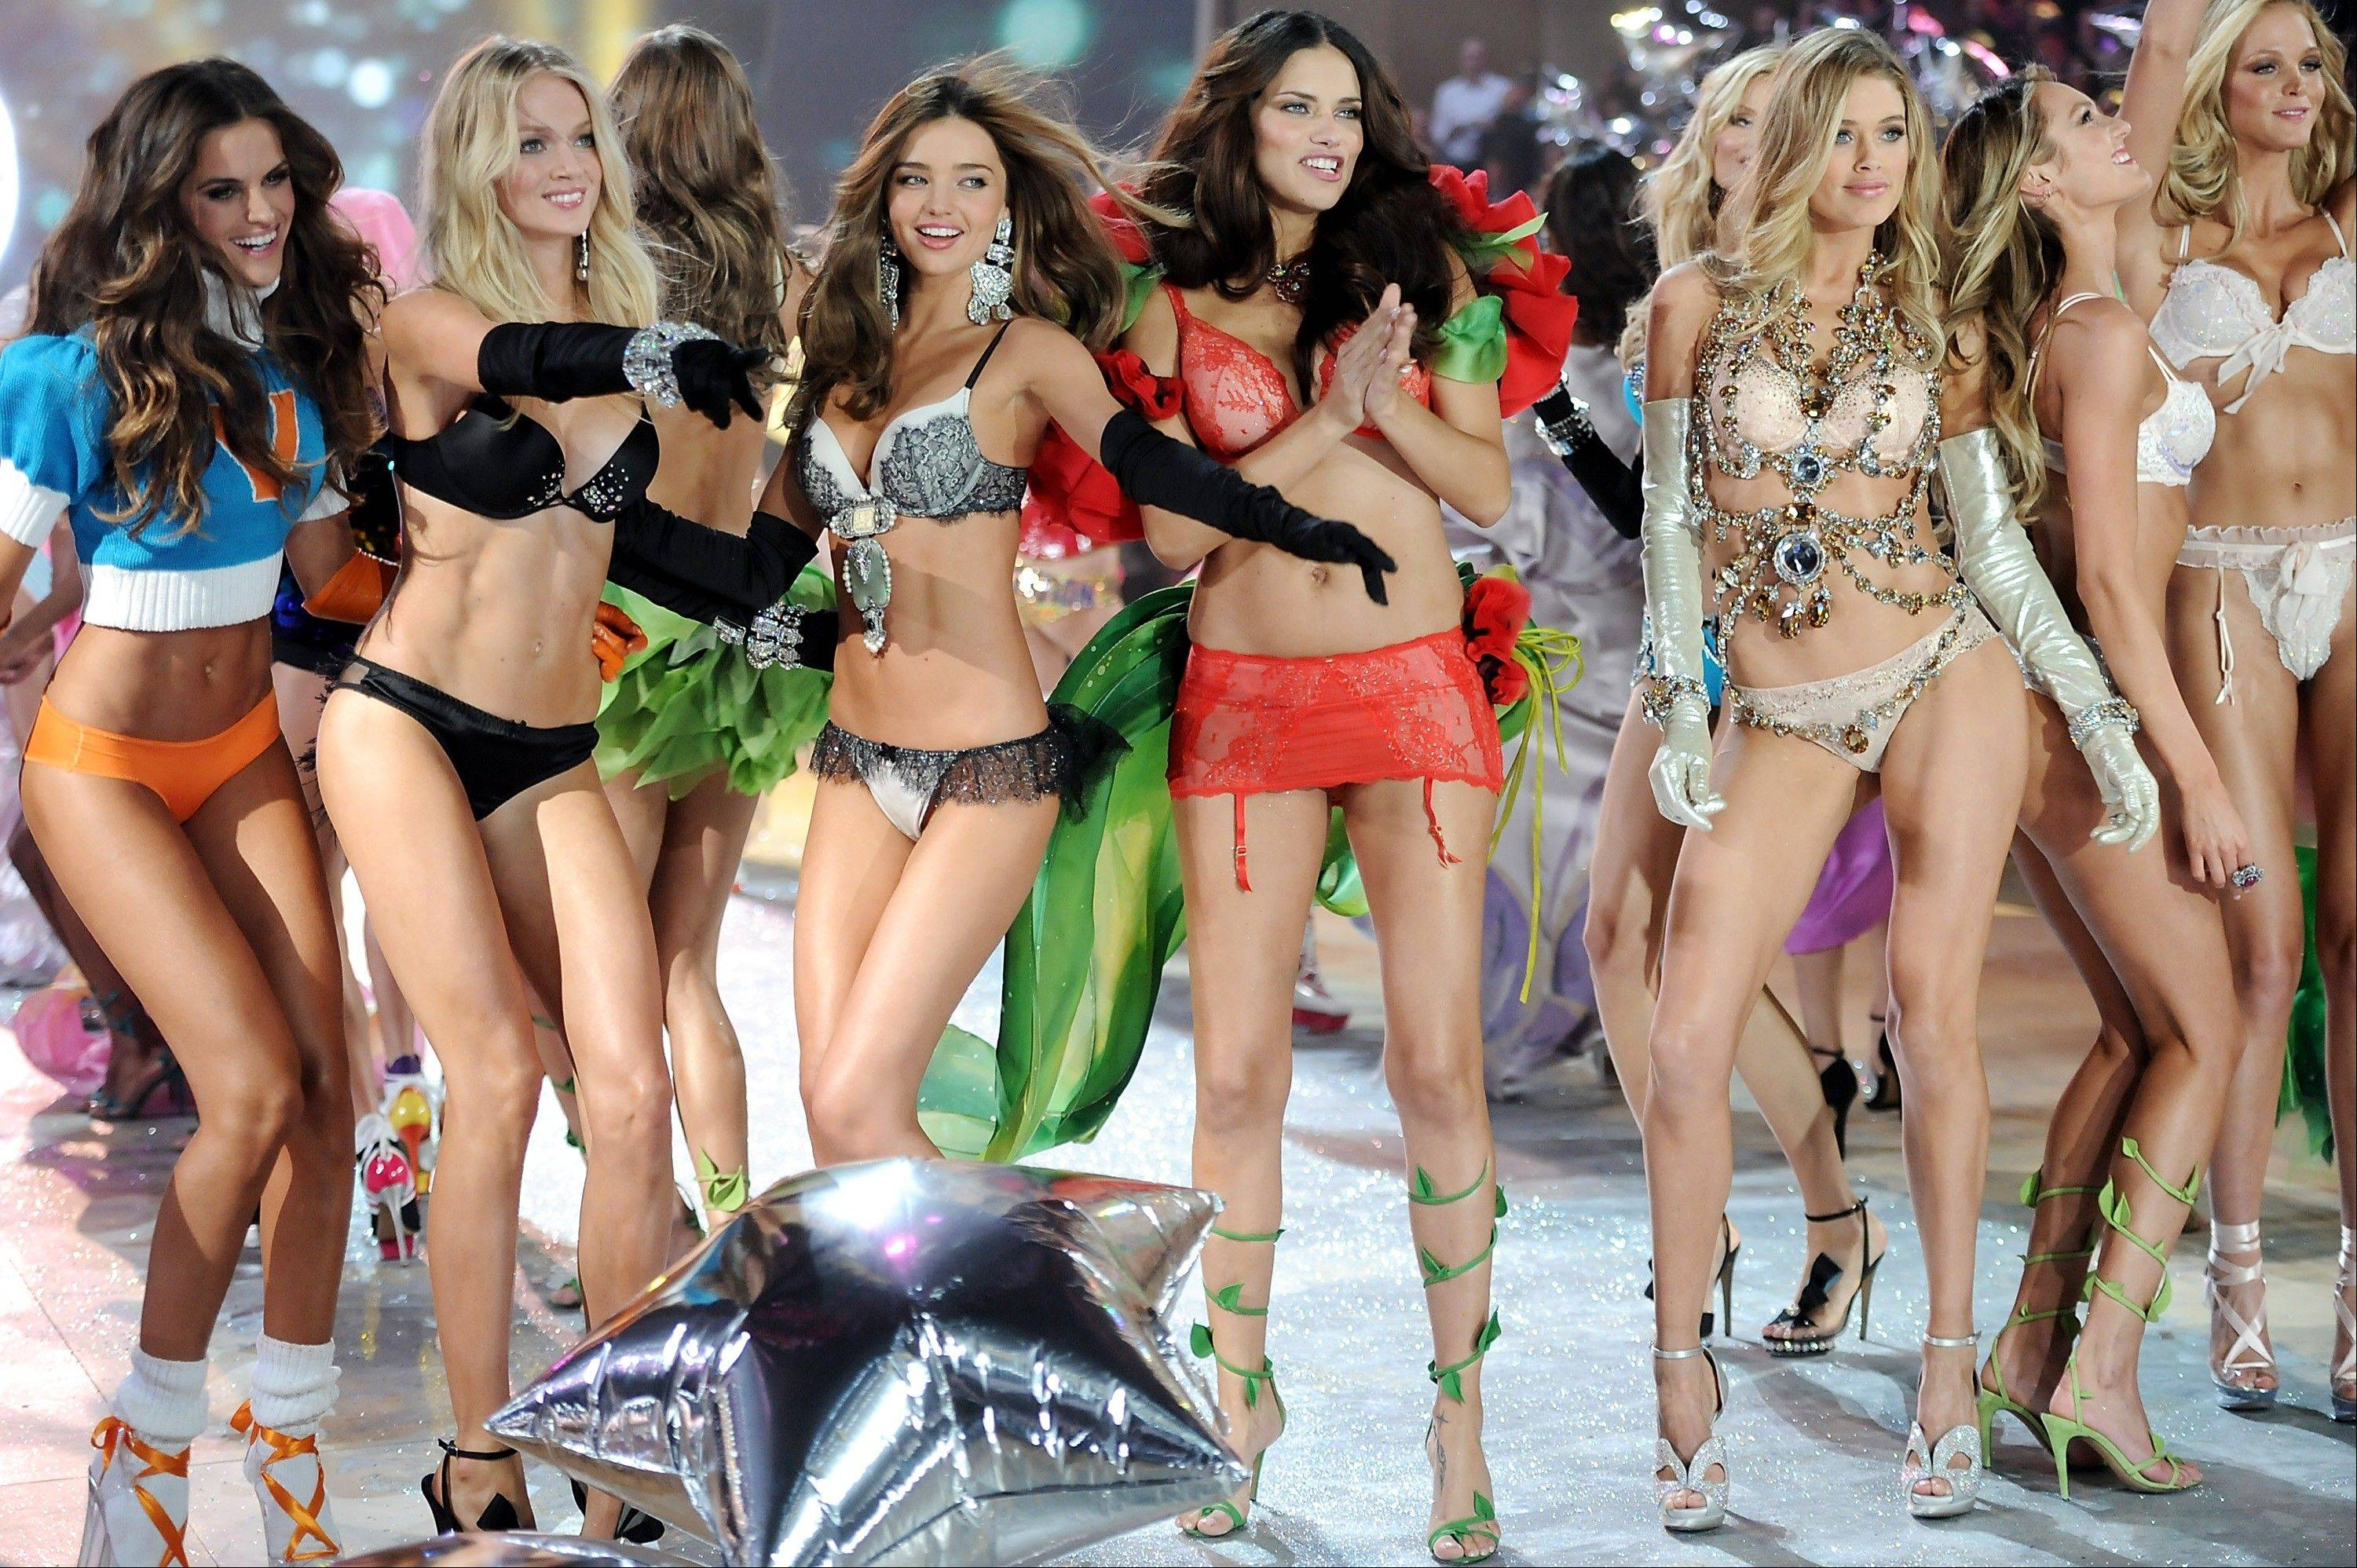 Models, from left, Izabel Goulart, Lindsay Ellingson, Miranda Kerr, Adriana Lima, Doutzen Kroes and Candice Swanepoel walk the runway during the finale of the 2012 Victoria's Secret Fashion Show.